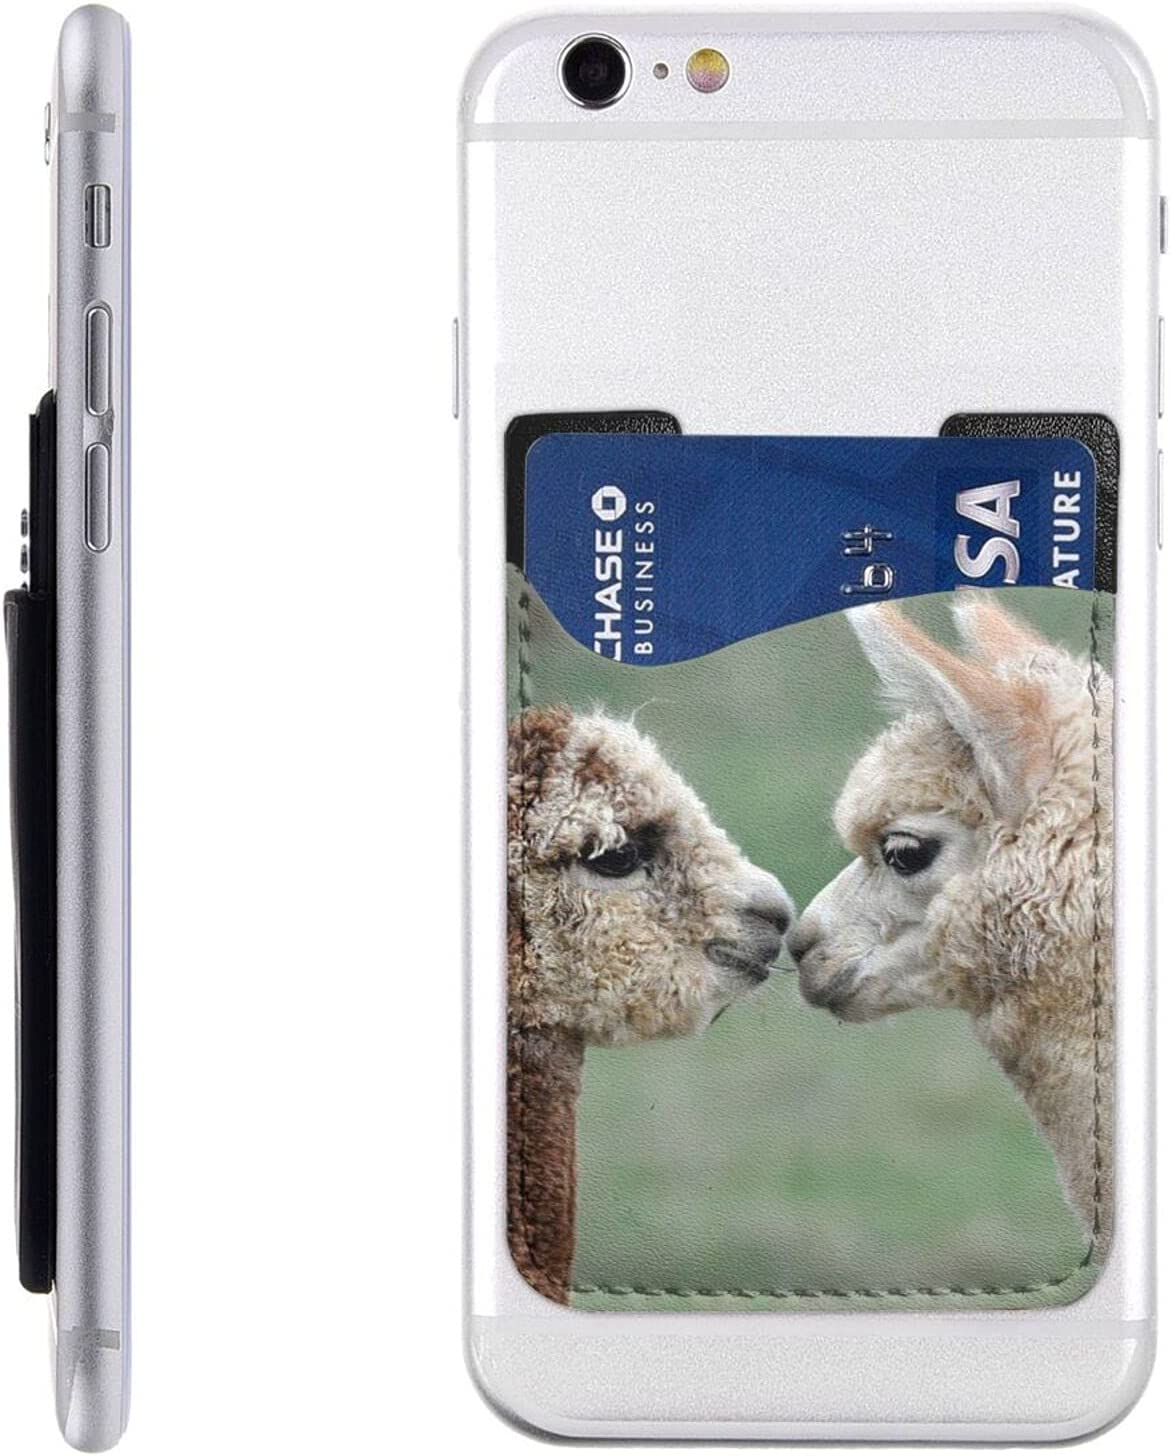 Funny Alpaca Phone Card Holder Latest Max 44% OFF item On Cell Wallet Stick S